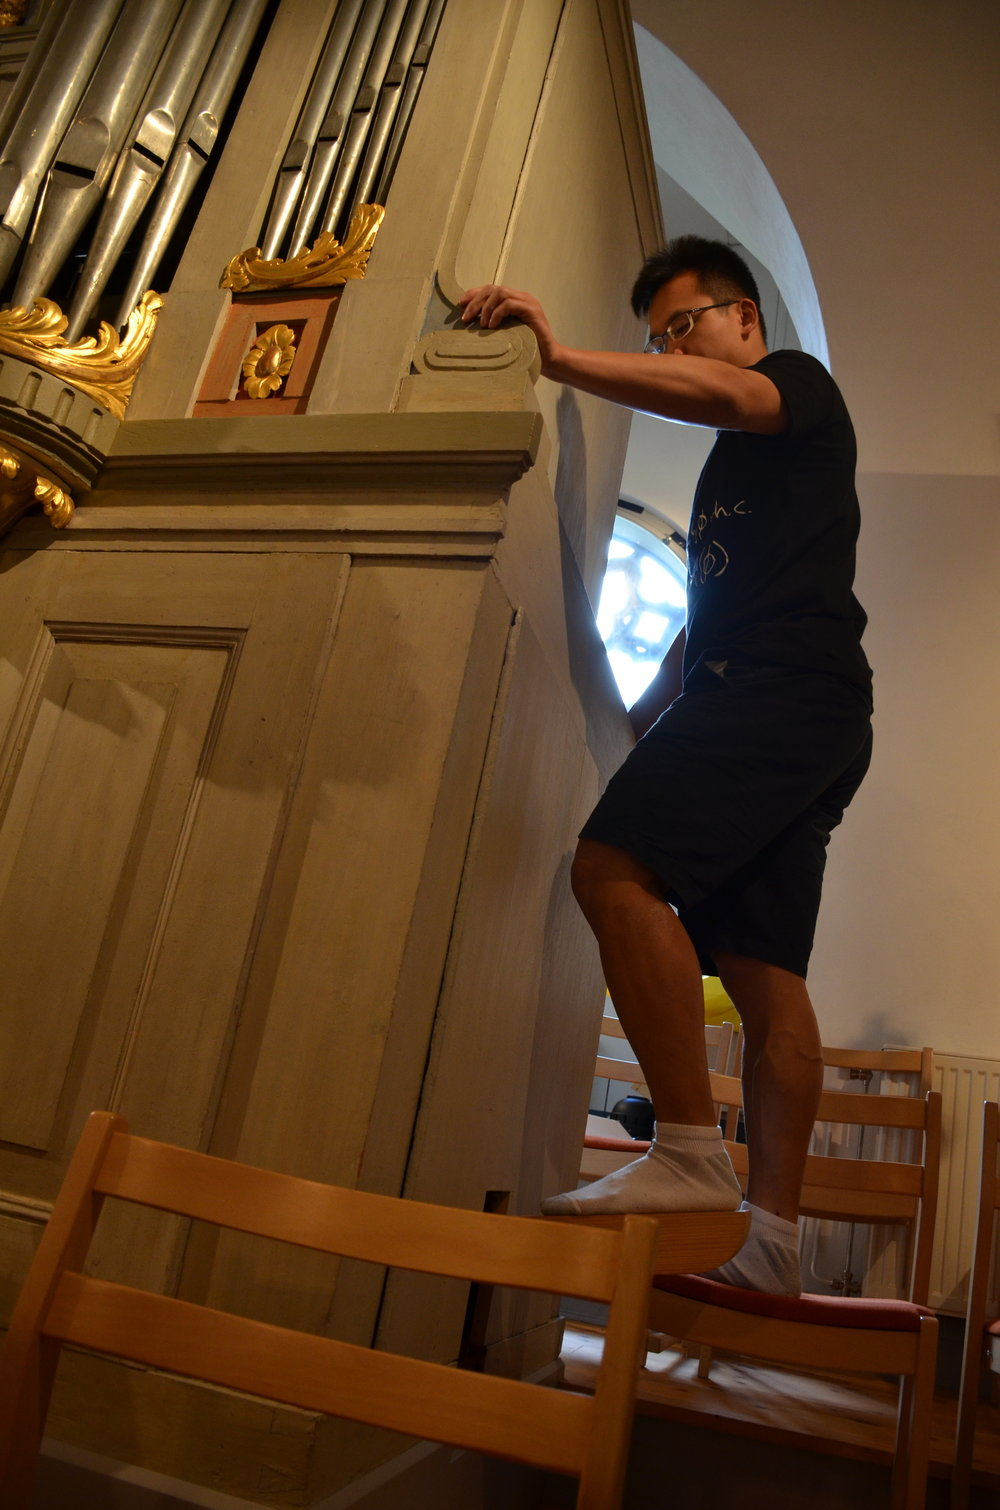 Adrian Cho pumps the bellows, 1783 Schiörlin organ in Jonsered, Sweden.